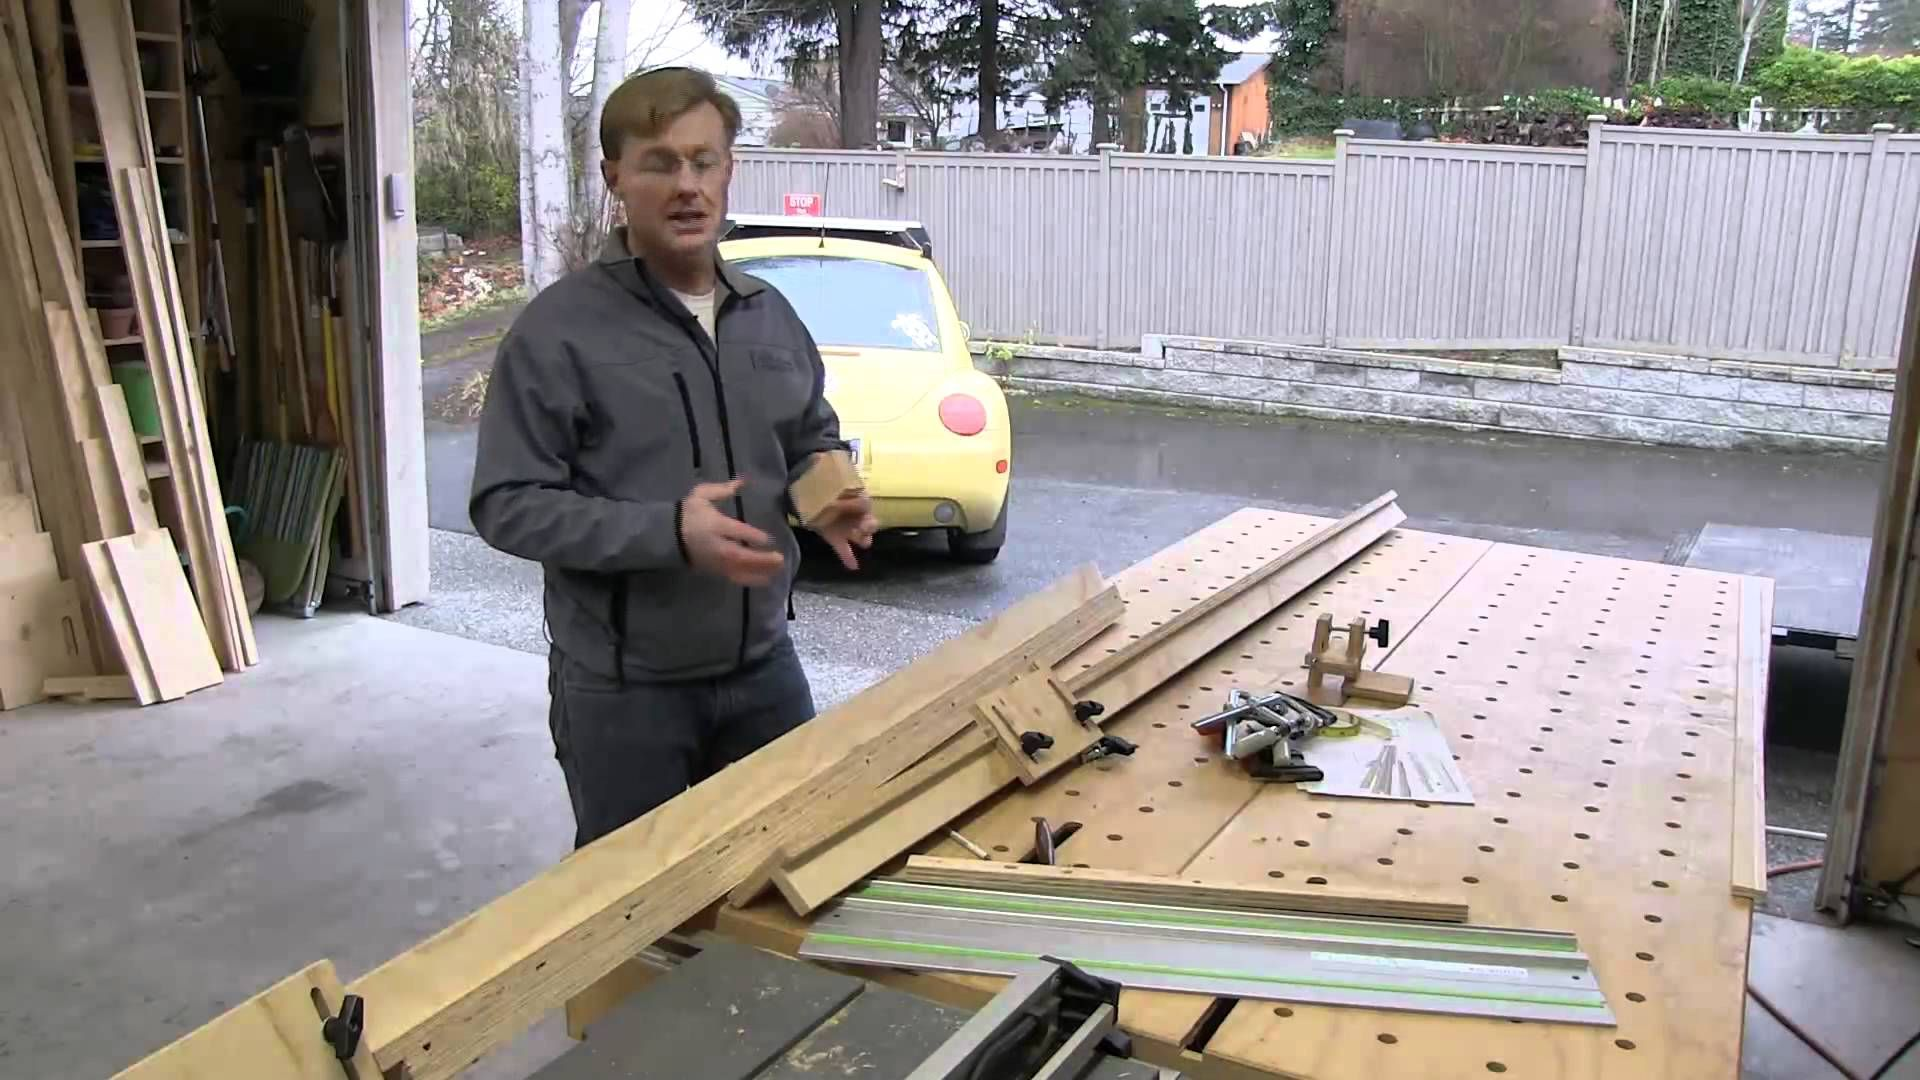 Made Jig For Cabinet Making And Cutting Plywood With The Festool Ts 55 Rail Http Www Paulkhomes Paulk Homes Order Plans Html